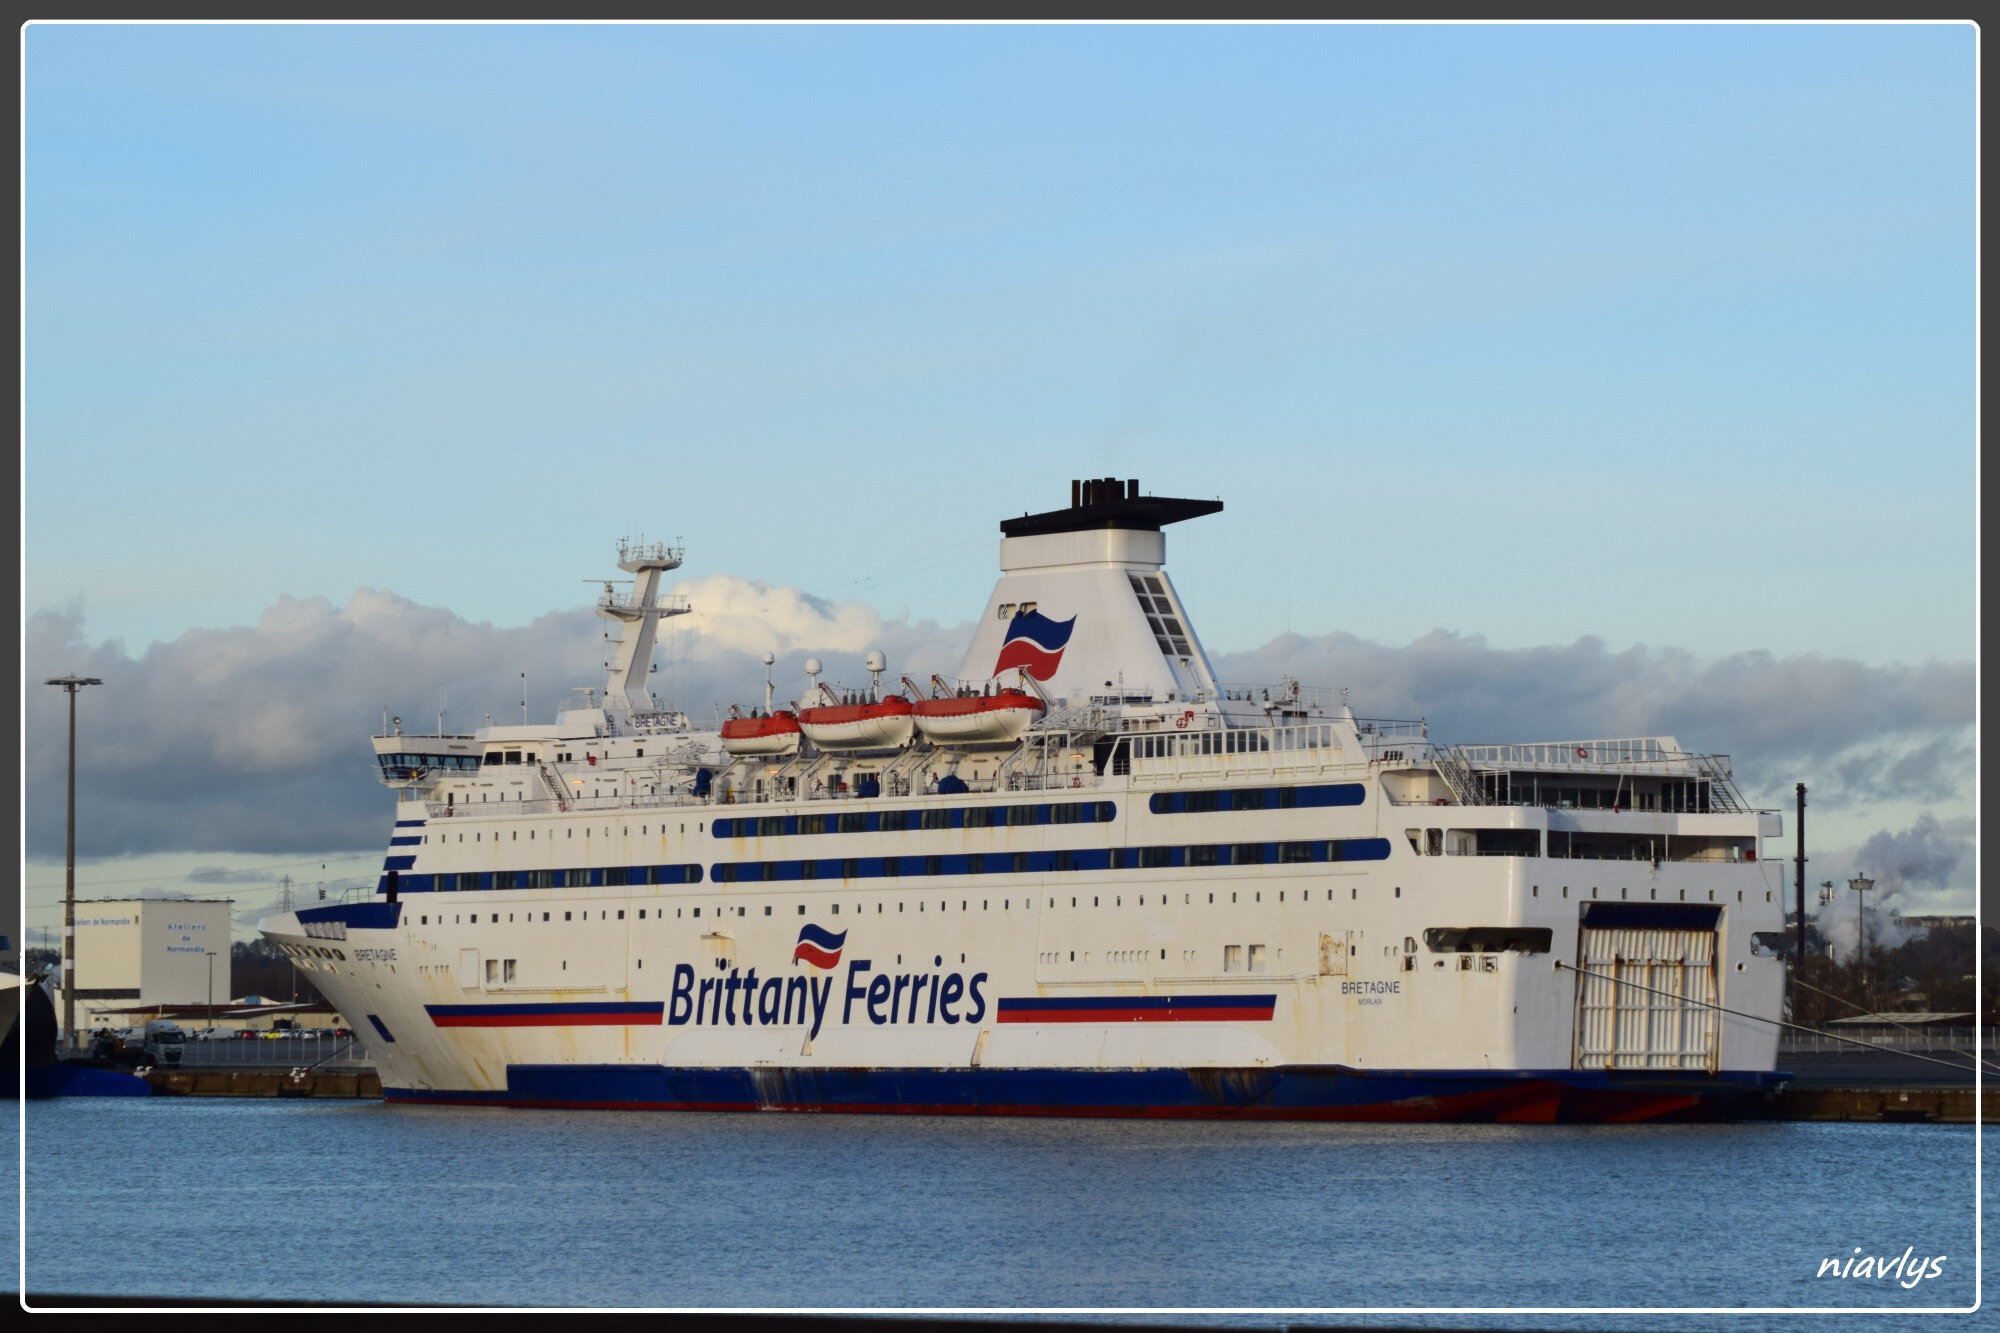 trois ferries brittany 5